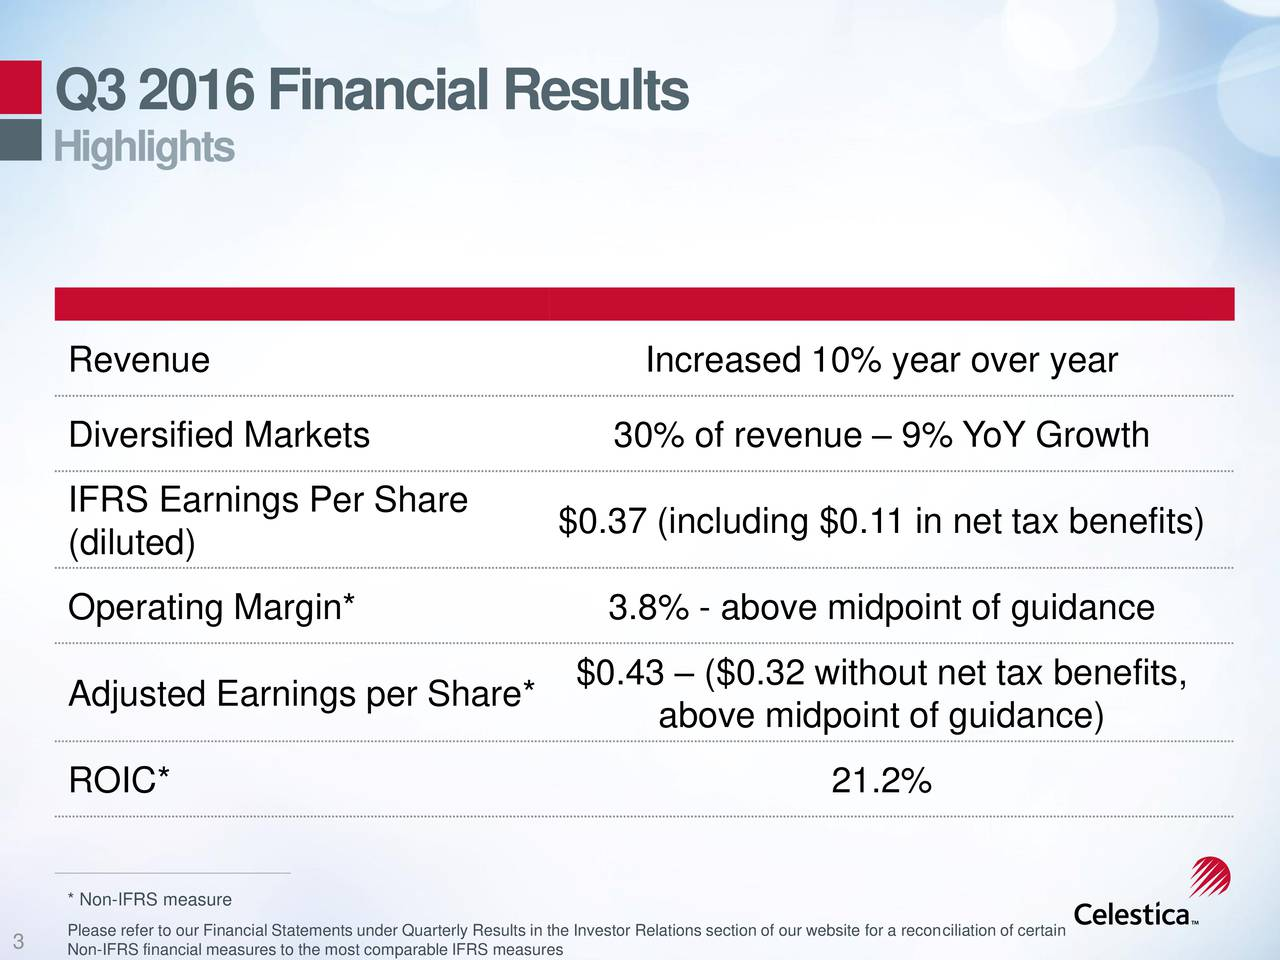 Highlights Revenue Increased 10% year over year Diversified Markets 30% of revenue  9% YoY Growth IFRS Earnings Per Share (diluted) $0.37 (including $0.11 in net tax benefits) Operating Margin* 3.8% - above midpoint of guidance $0.43  ($0.32 without net tax benefits, Adjusted Earnings per Share* above midpoint of guidance) ROIC* 21.2% * Non-IFRS measure Please refer to our Financial Statements under Quarterly Results in the Investor Relations section of our website for a reconciliation of certain